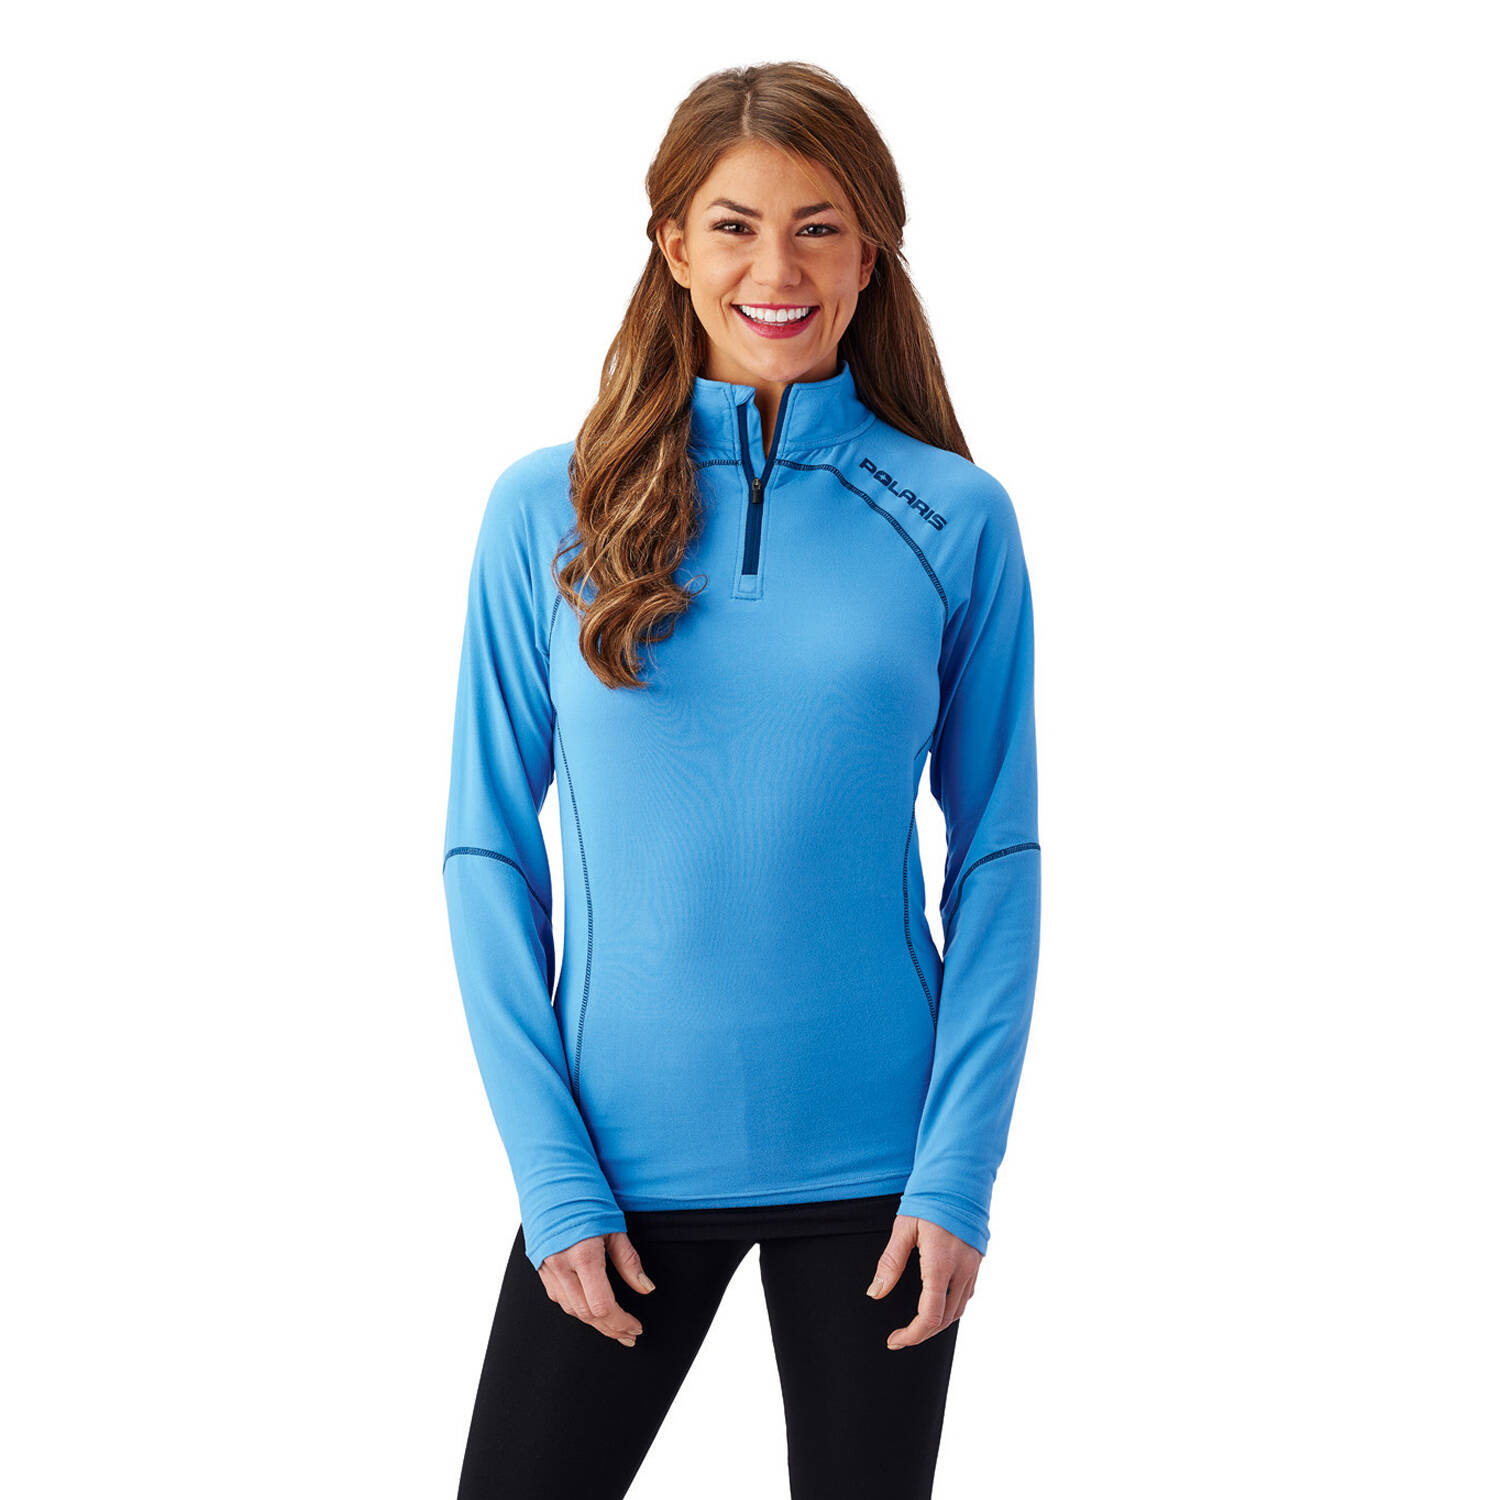 Women's Long-Sleeve Quarter-Zip Pullover with Navy Polaris® Logo, Marina Blue